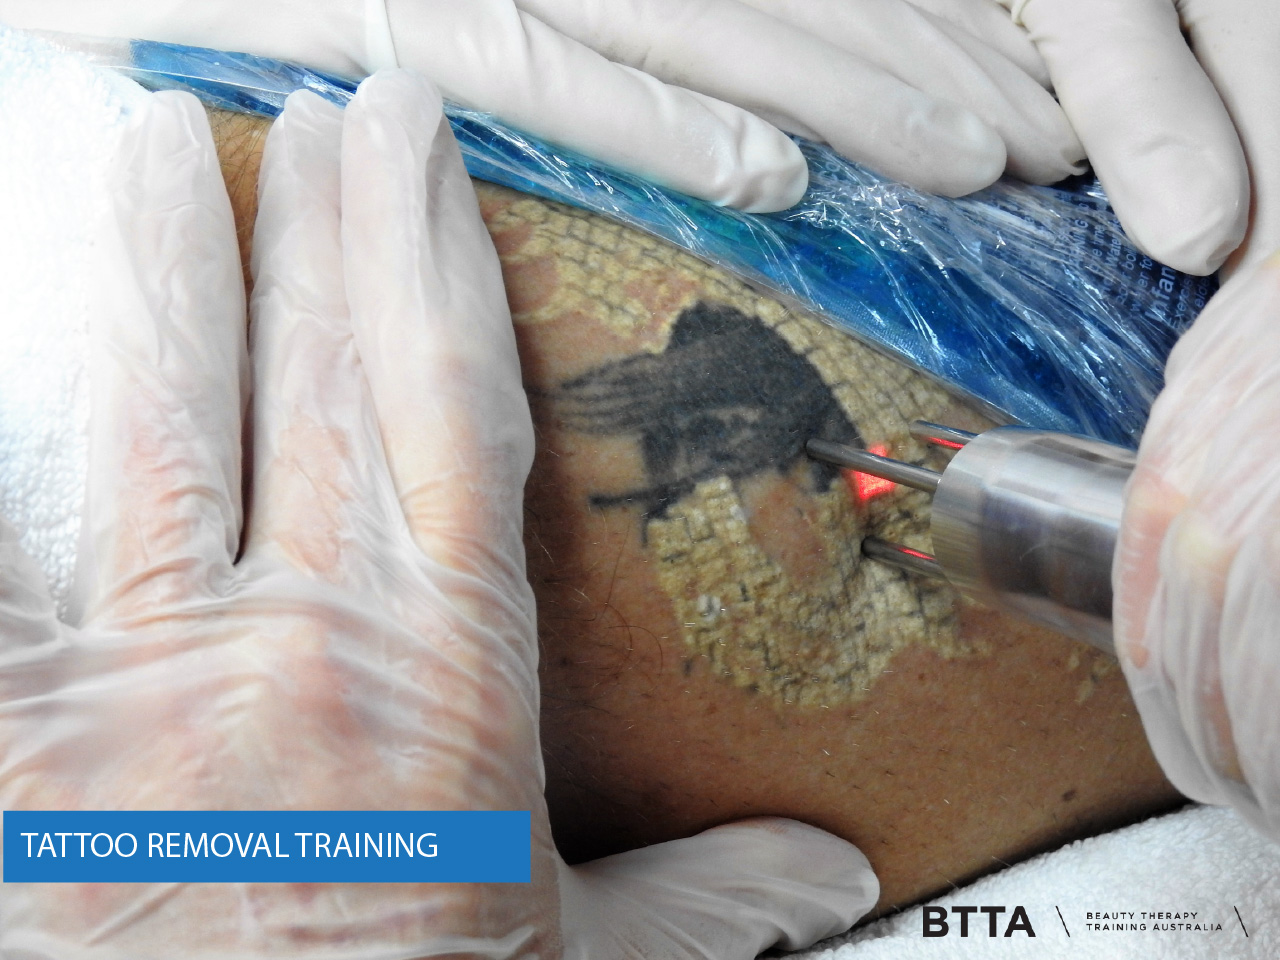 Tattoo Removal Images Laser Training International